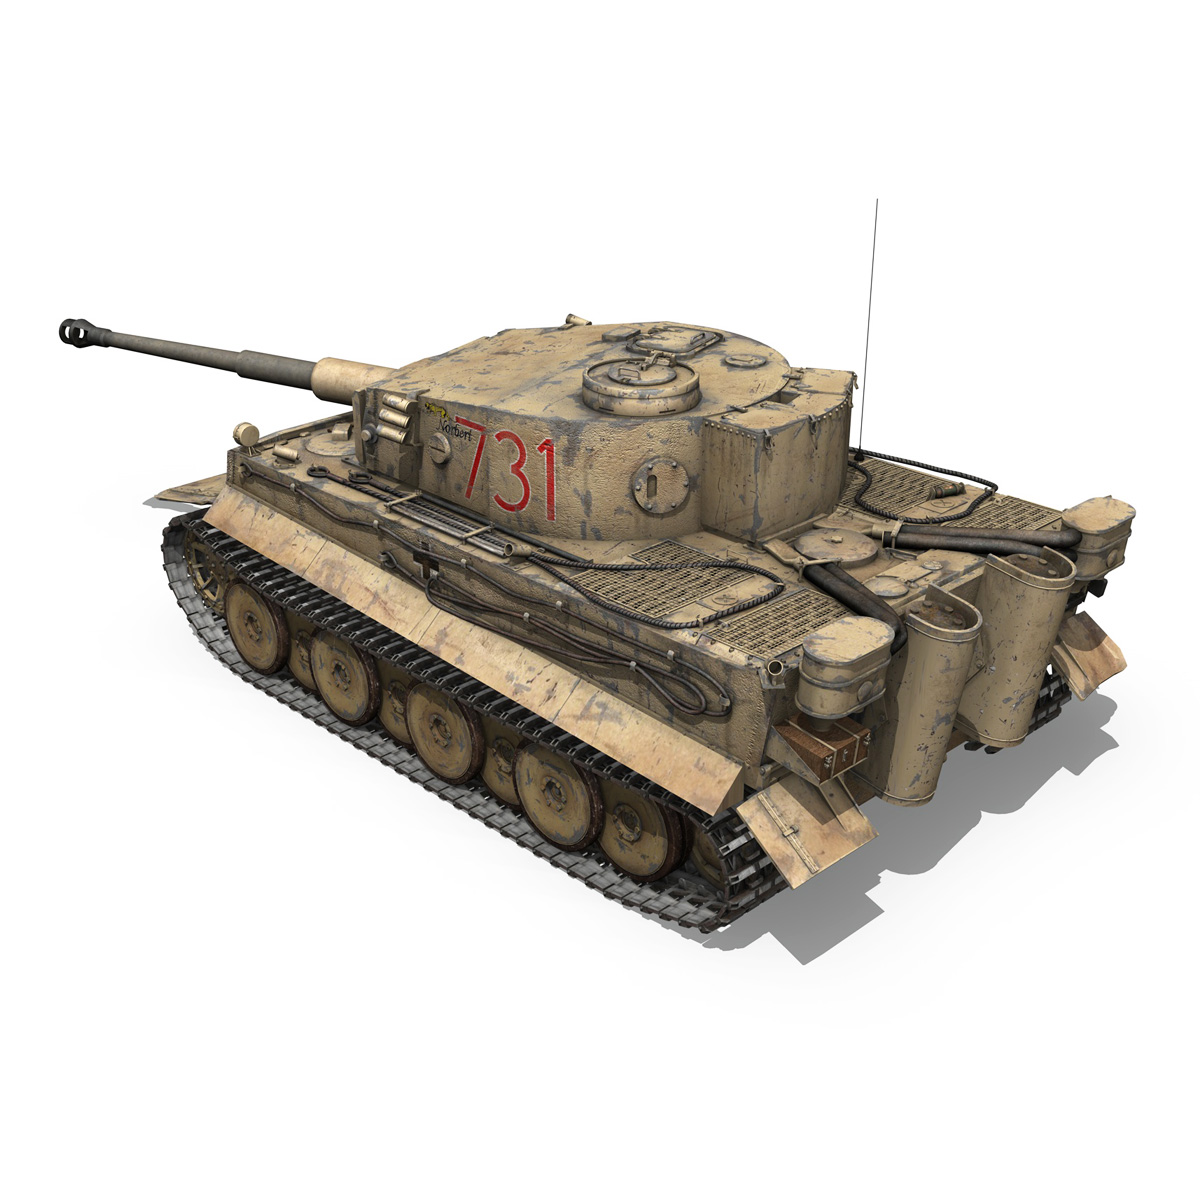 panzer vi – tiger – 731 – early production 3d model 3ds lwo lw lws obj c4d fbx 265432